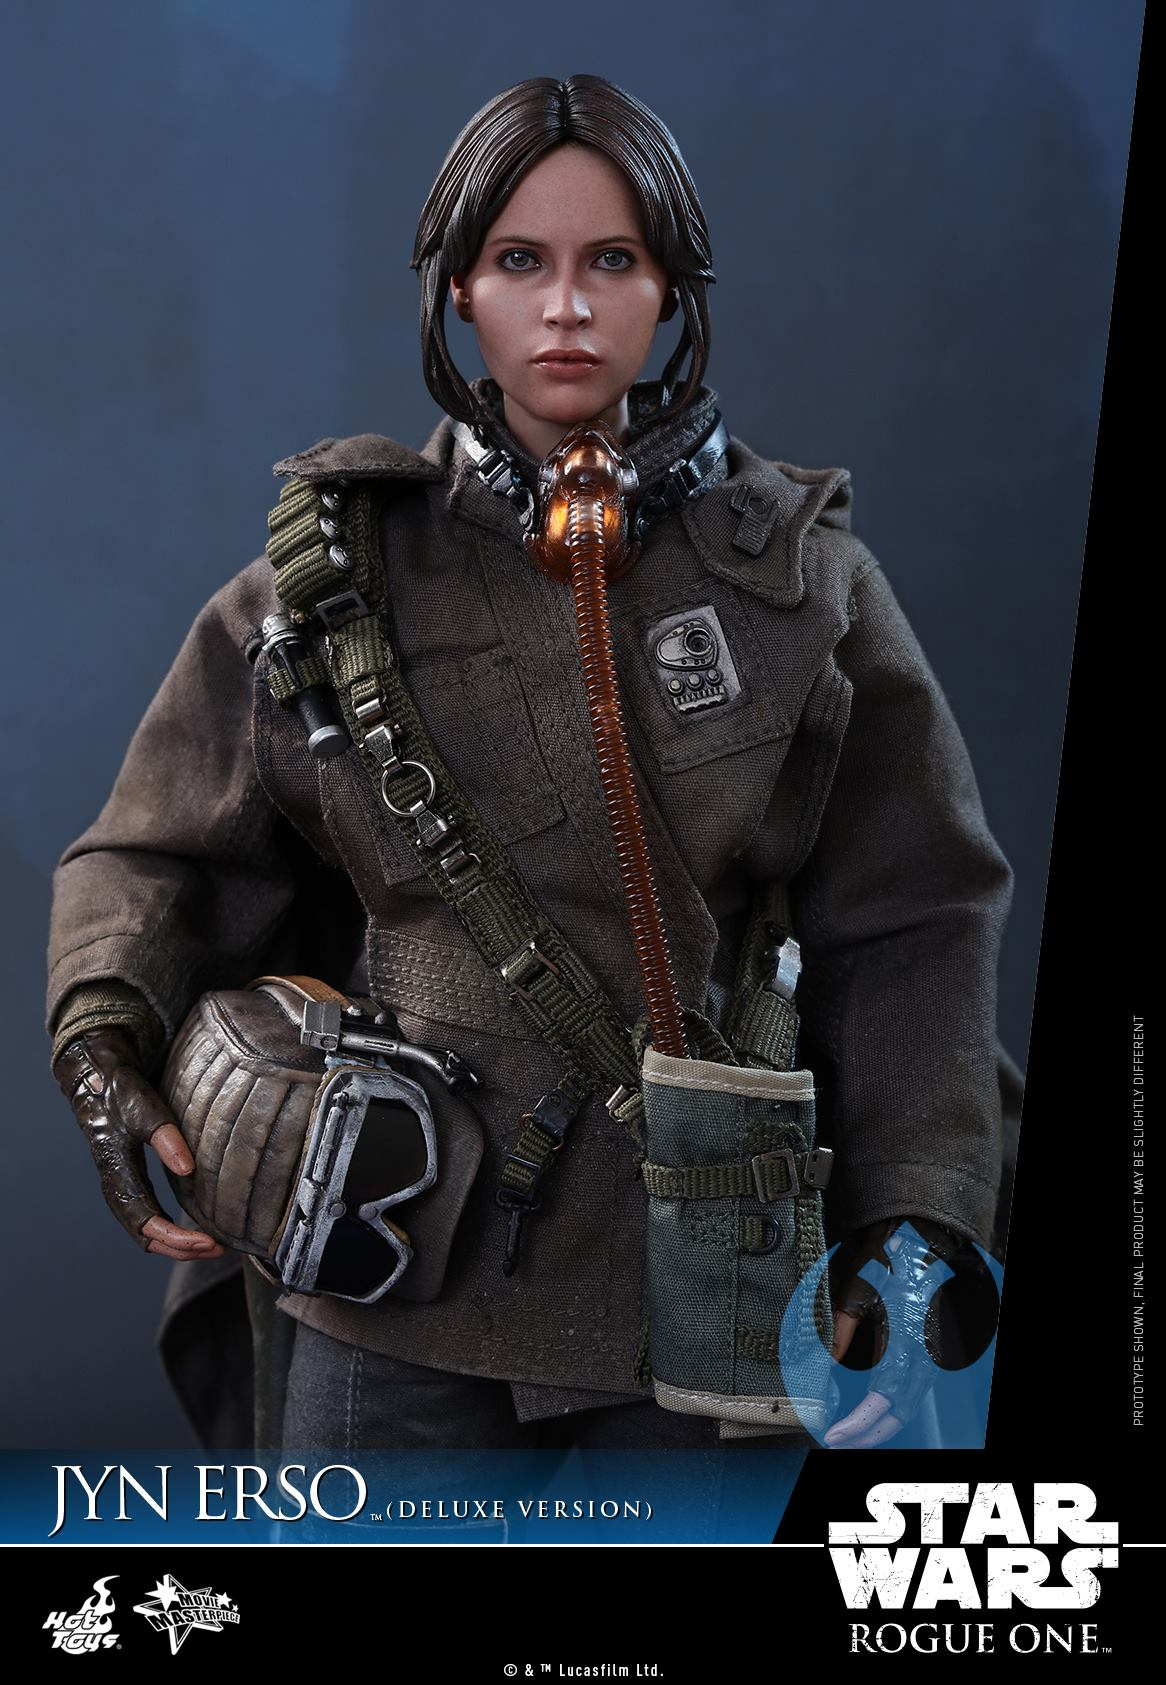 Rogue One Jyn Erso Hot Toy (Deluxe)